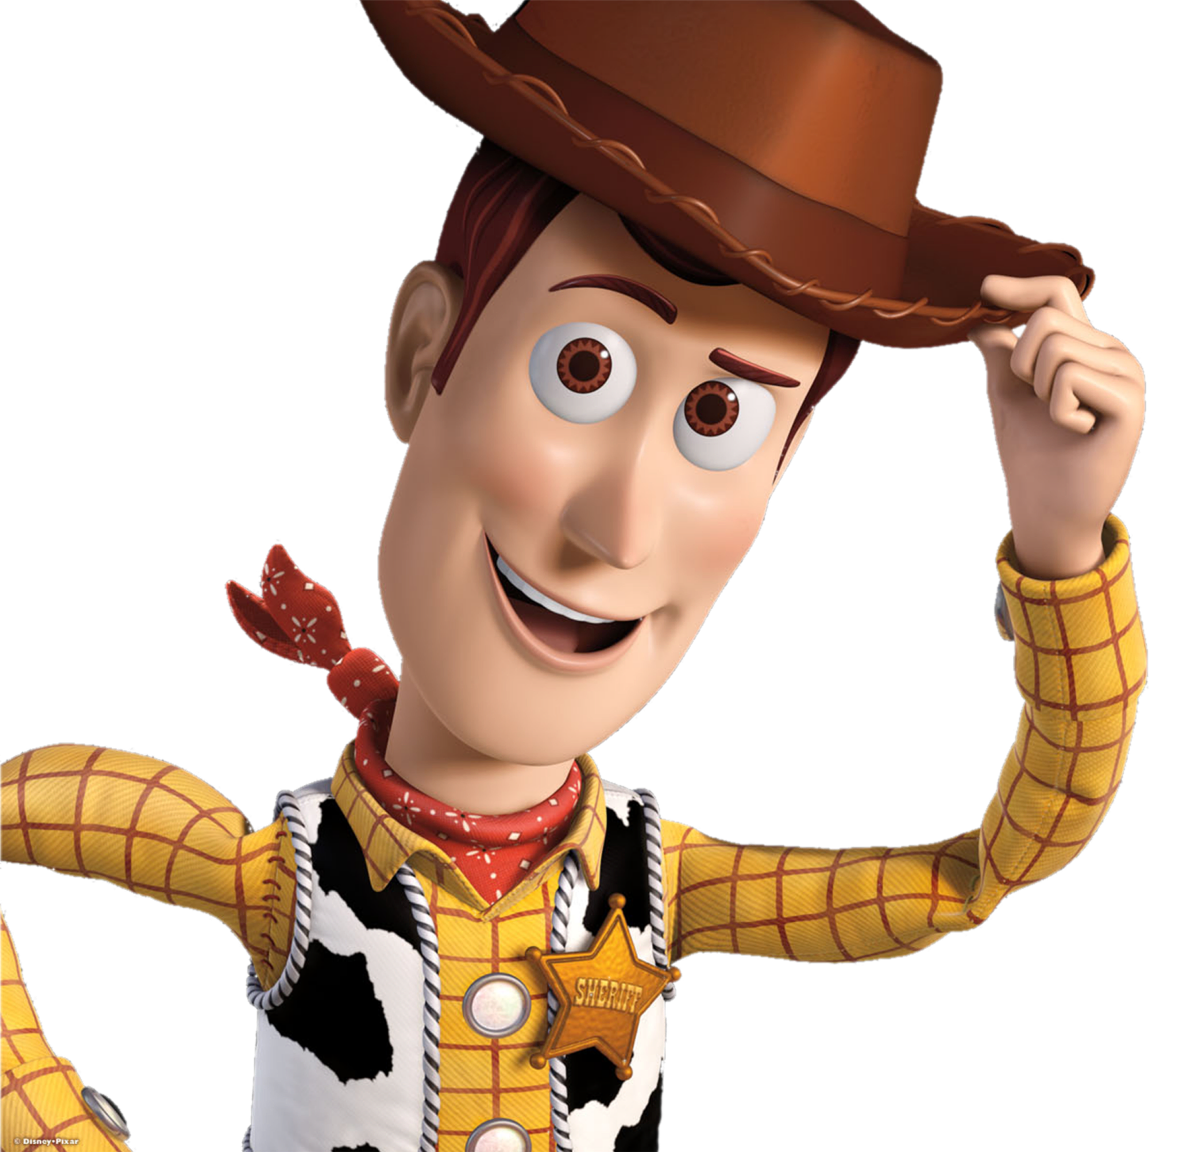 Download Toy Story Woody Clipart HQ PNG Image   FreePNGImg